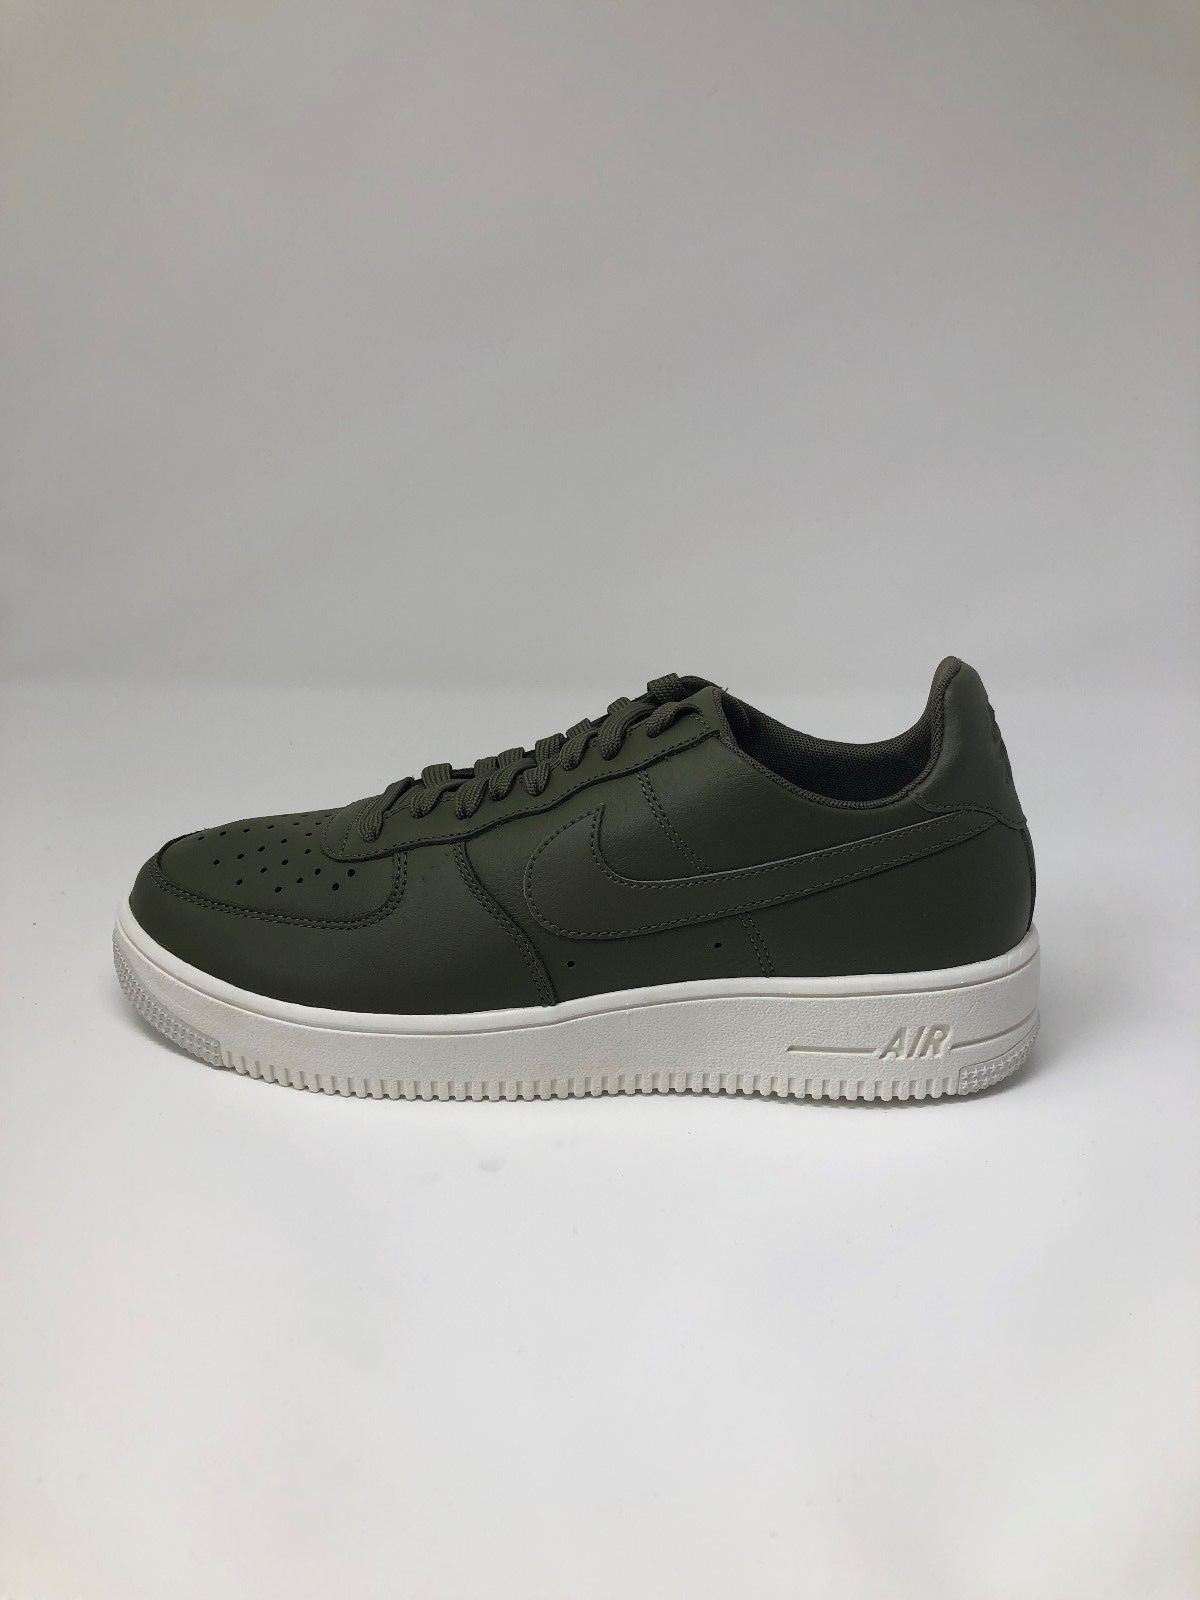 Details about Nike Air Force 1 Ultraforce LTHR 845052 201 Mens Trainers